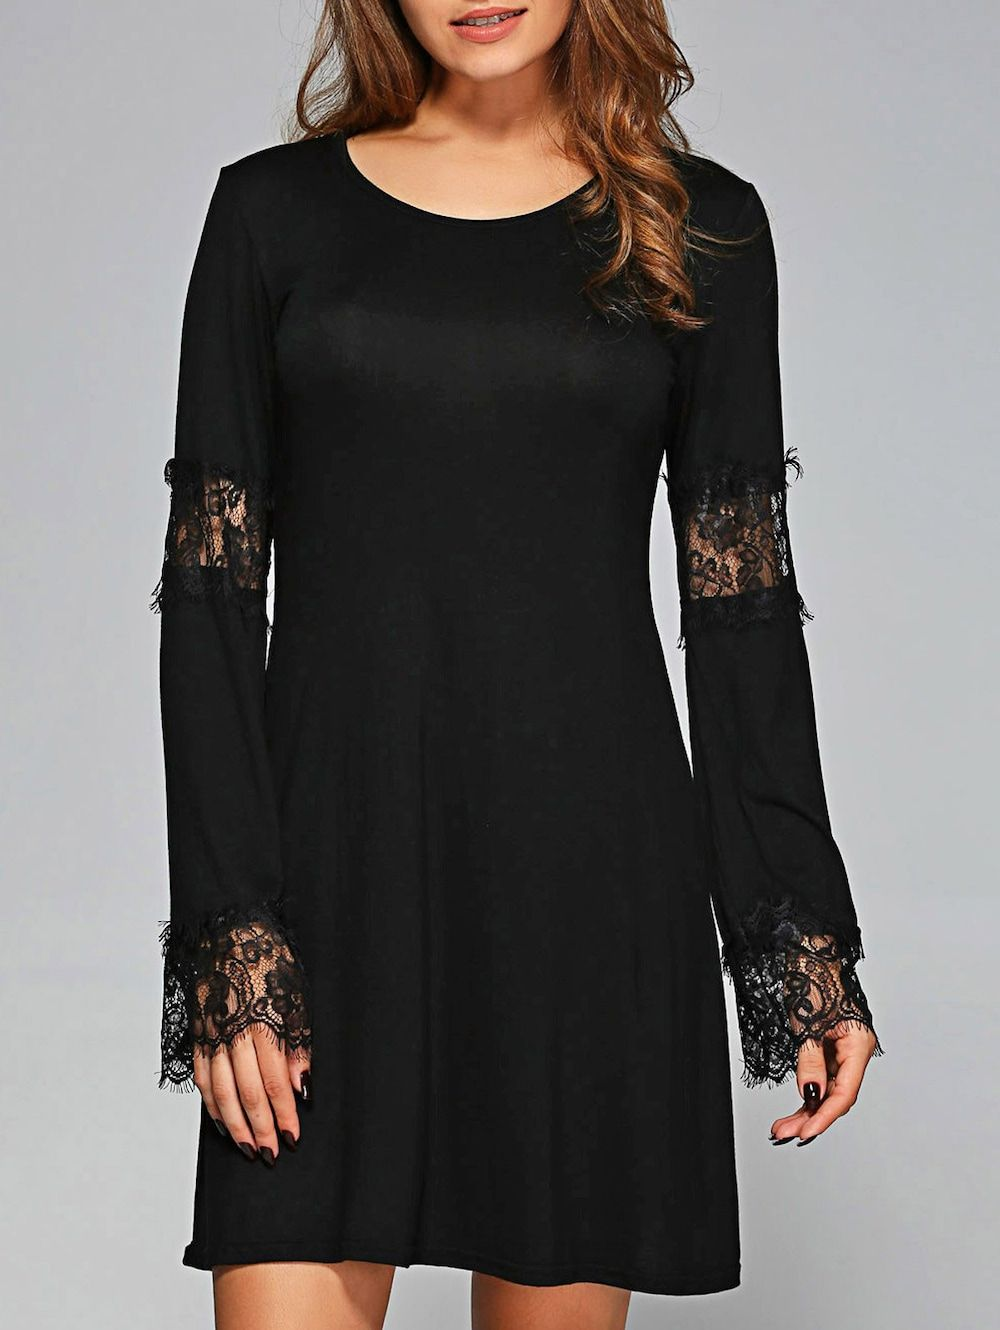 Lace cuffs openwork long sleeves dress lace cuffs sleeved dress